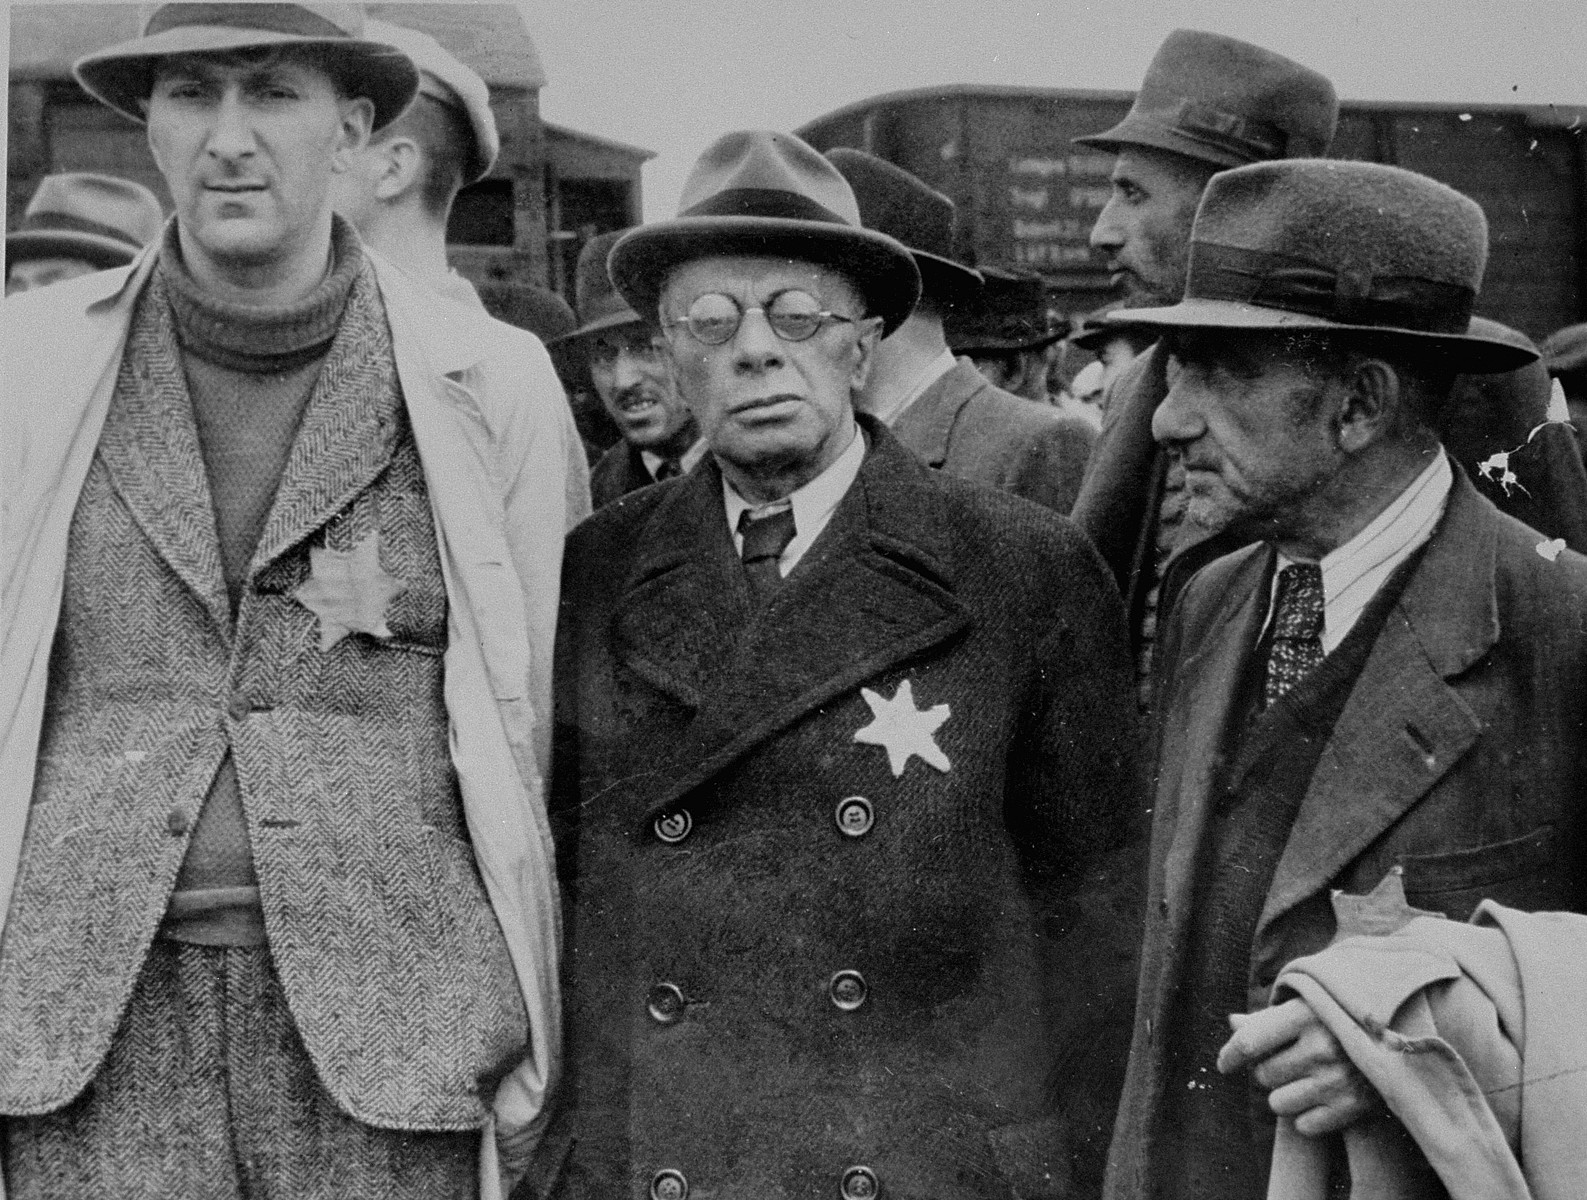 Three Jewish men from Subcarpathian Rus await selection on the ramp at Auschwitz-Birkenau.   Among those pictured are Dr. Henry Hegedush, a lawyer from Tesco (center), Dr. Lazar, a lawyer from Tesco (on the right) and Zoltan Kolos, a hotel owner from Tesco (behind Dr. Hegedush, on the left).